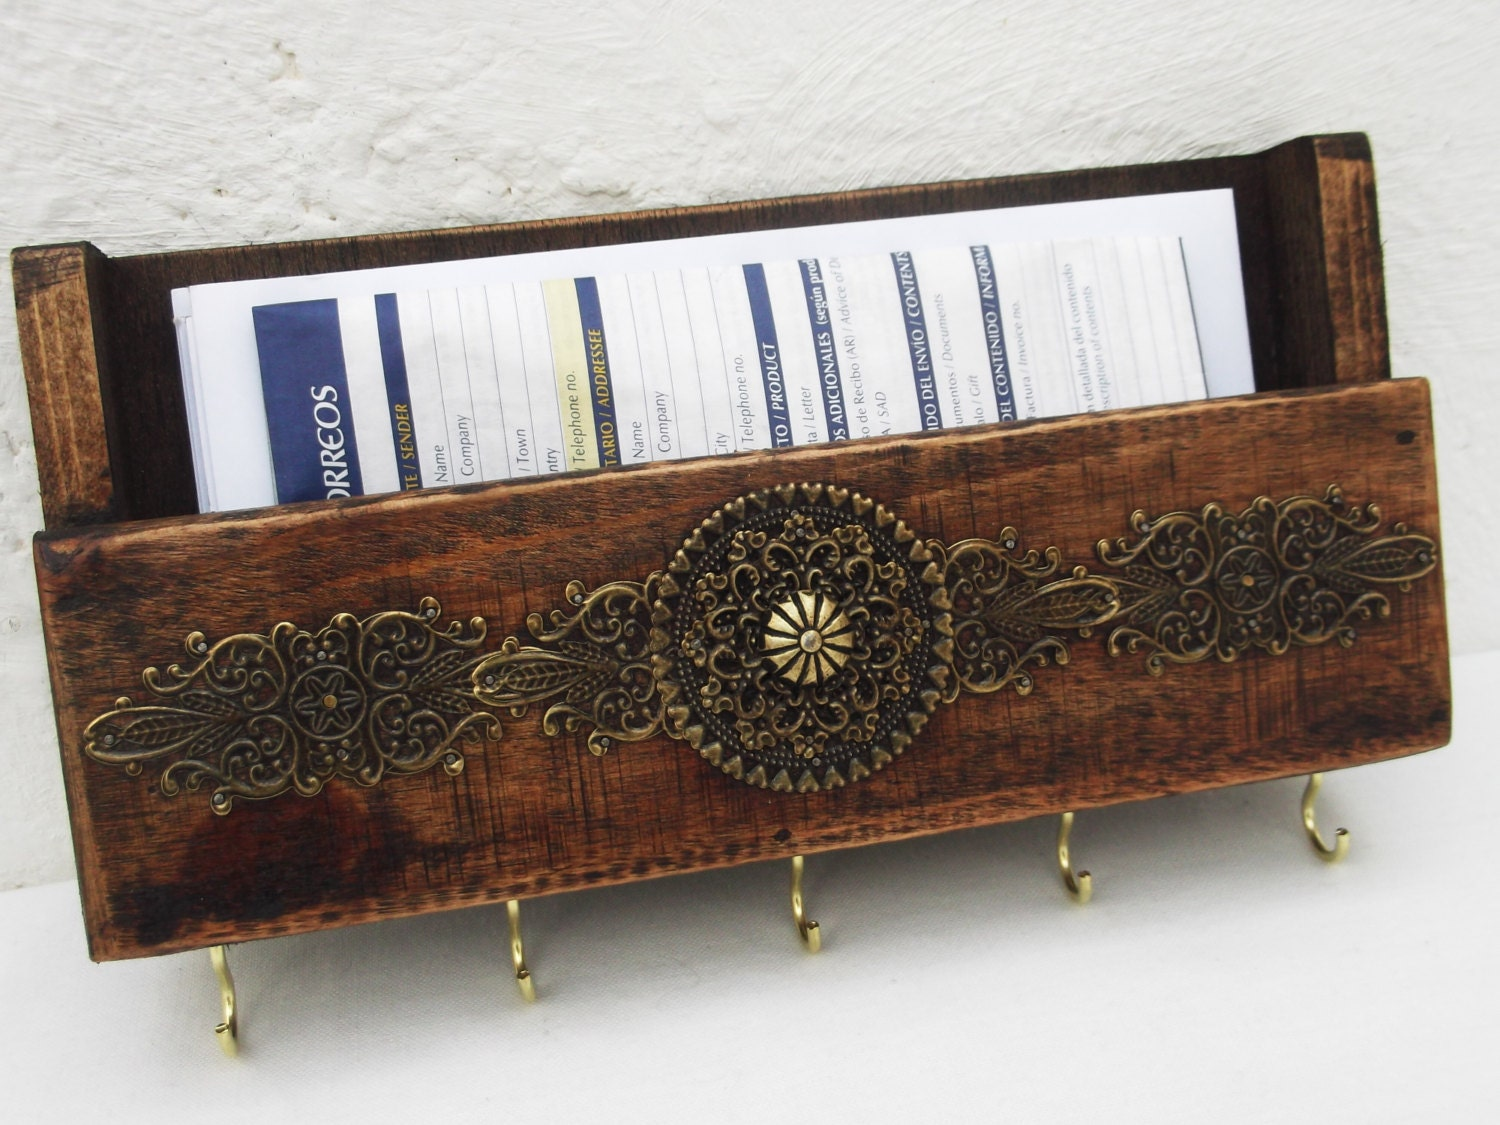 Rustic mail holder and key rack wooden wall by regalosrusticos - Mail holder and key rack ...